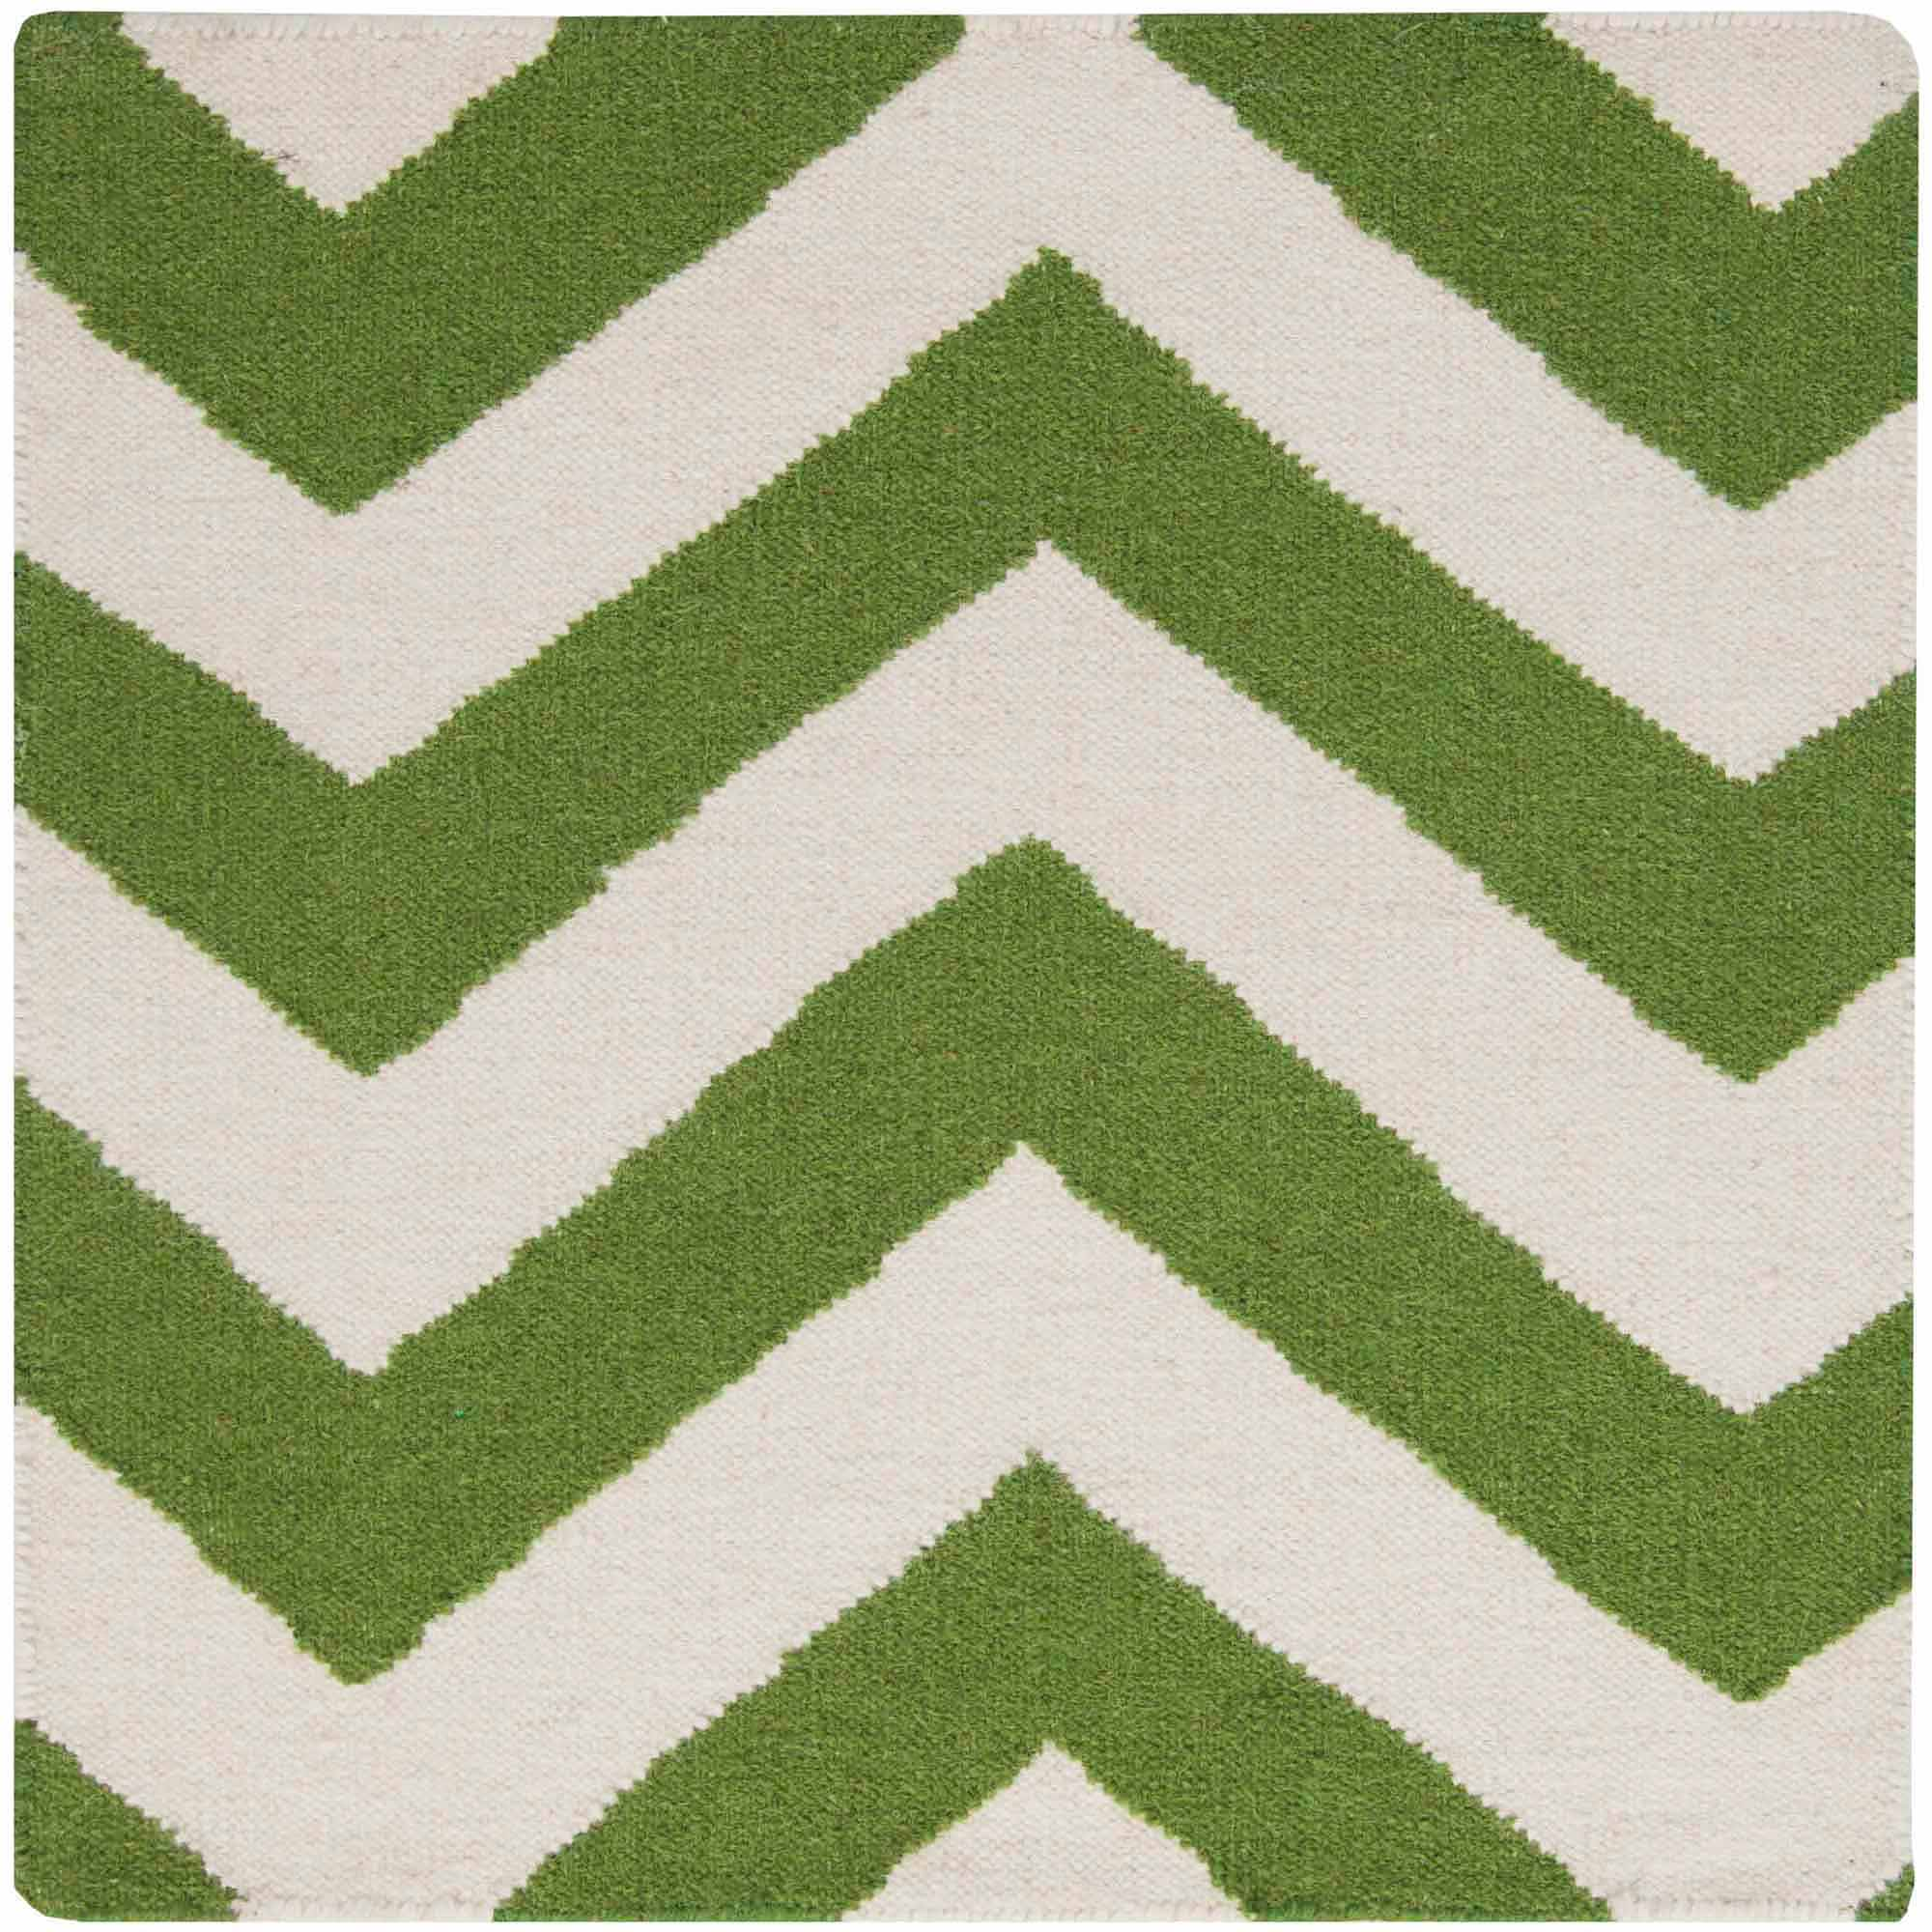 Art of Knot Laughlin Hand Woven Chic Chevron Flatweave Wool Area Rug, Forest